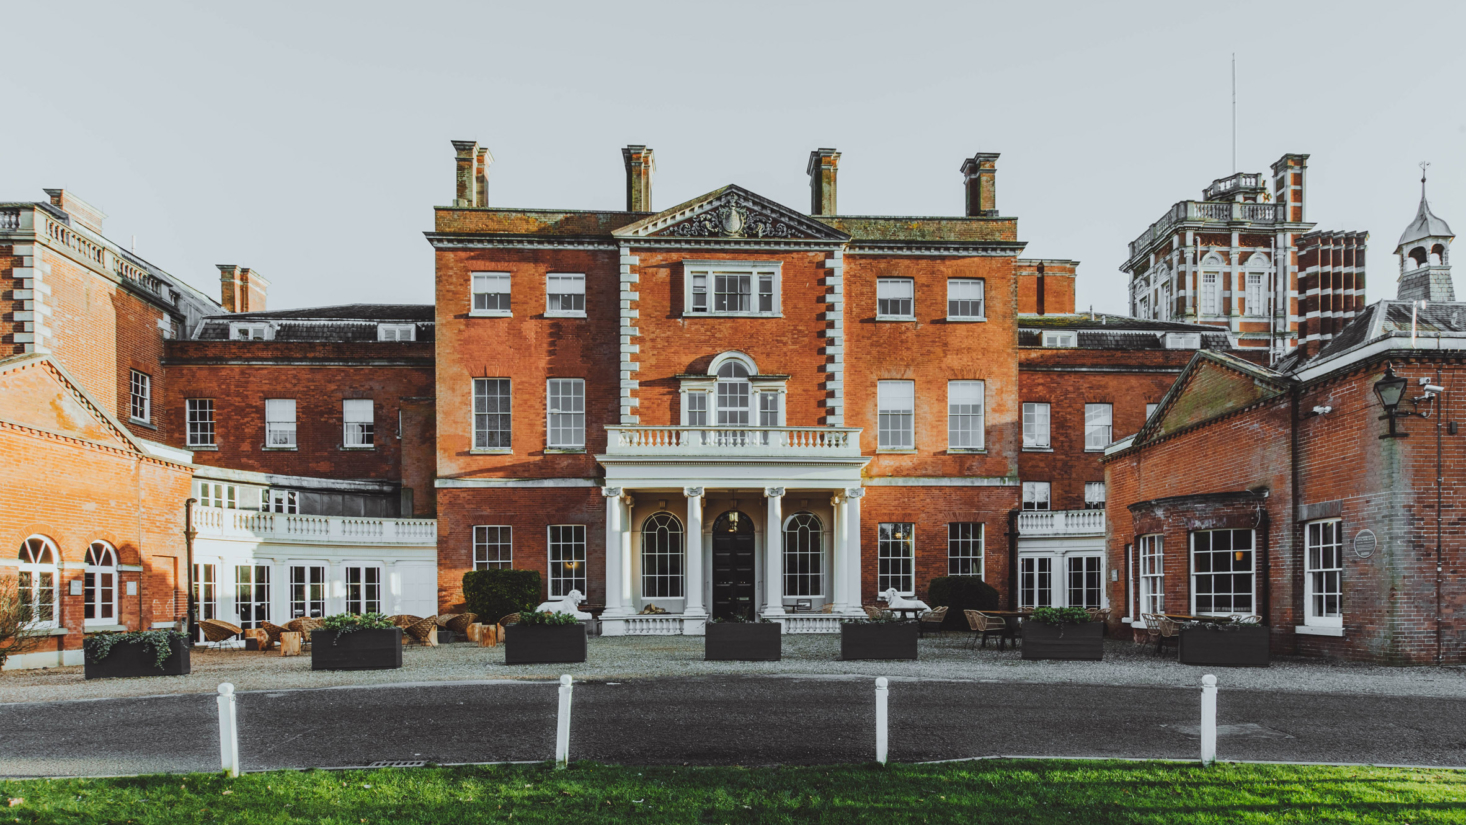 'Hotel of the Year': The Birch in Hertfordshire, England